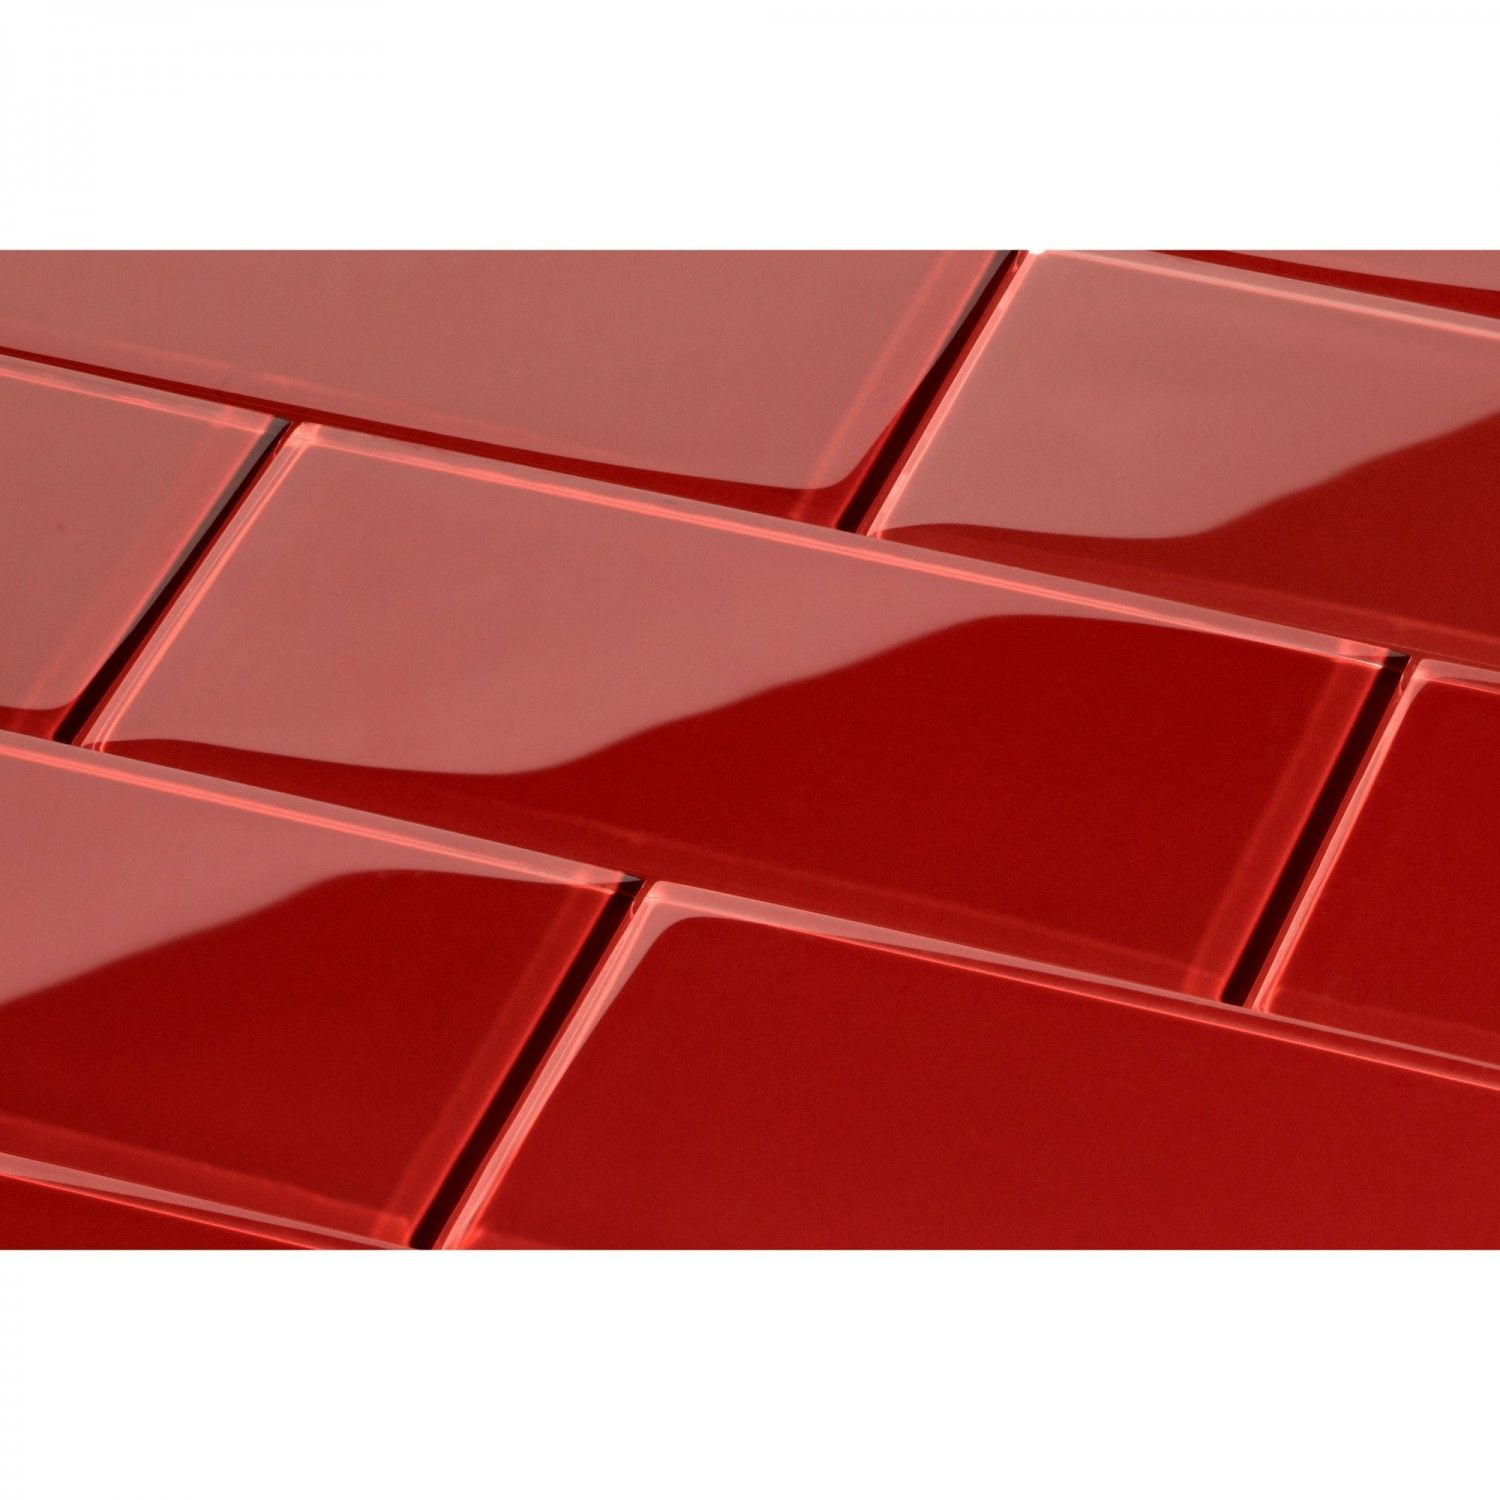 Glossy Red Subway Tile For Backsplash Google Search Red Subway Tile Glass Subway Tile Glass Tile